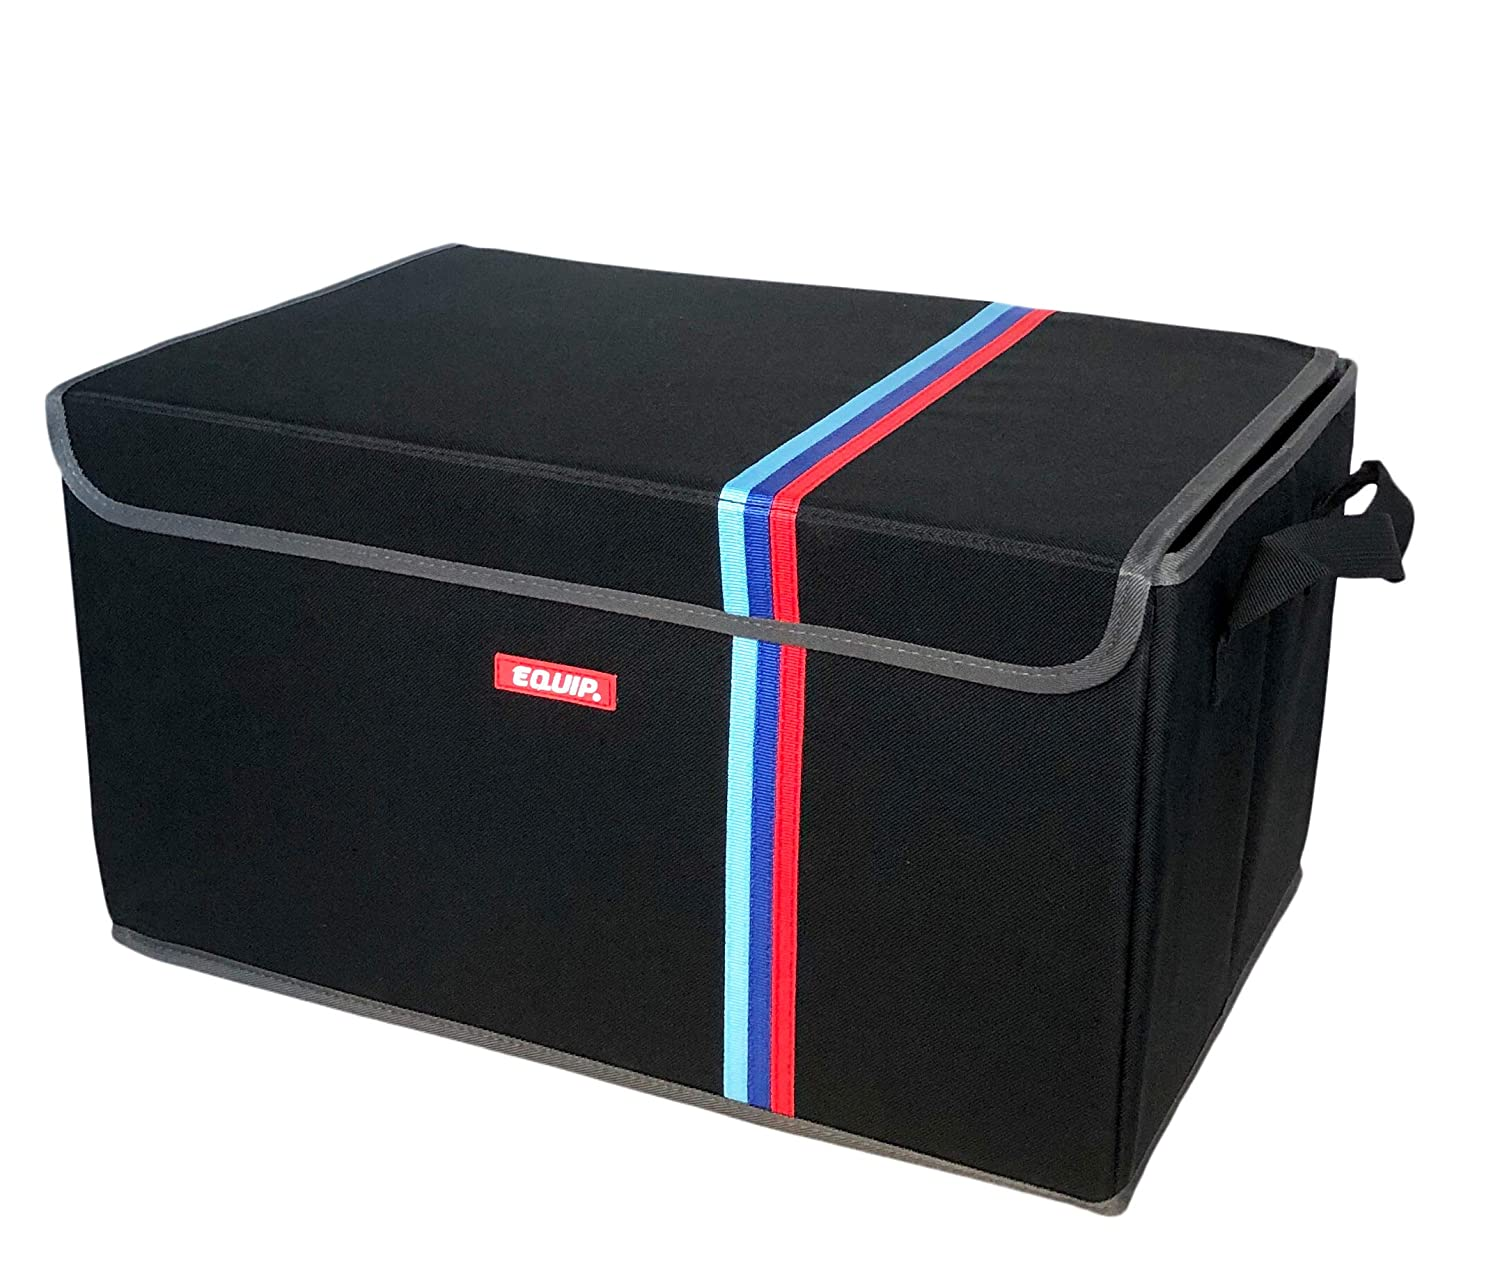 No Assembly Required Equipt Car Trunk Organizer Cargo Organization and Storage Equipt Group